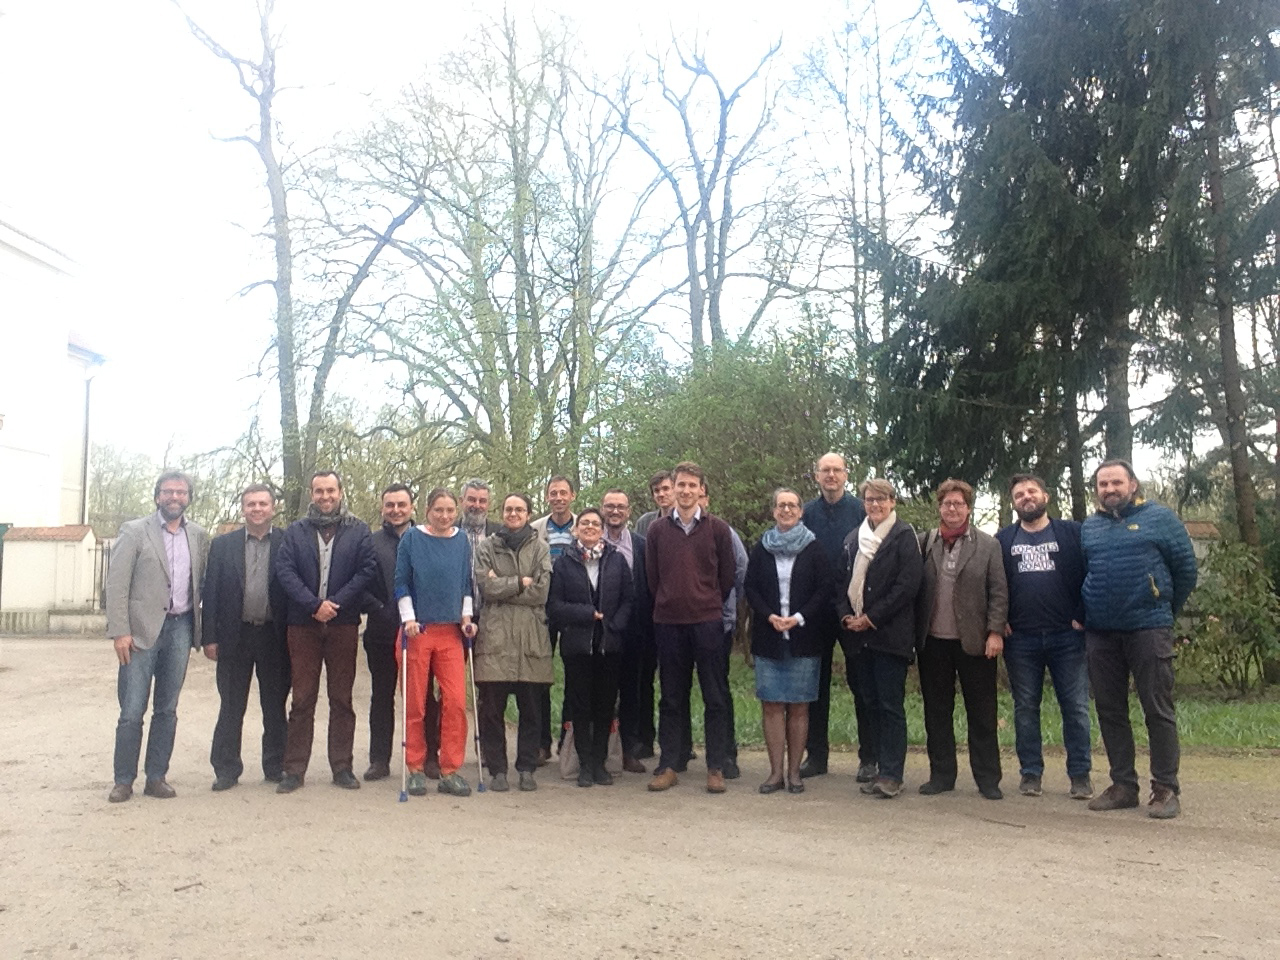 Nieborów meeting group photo